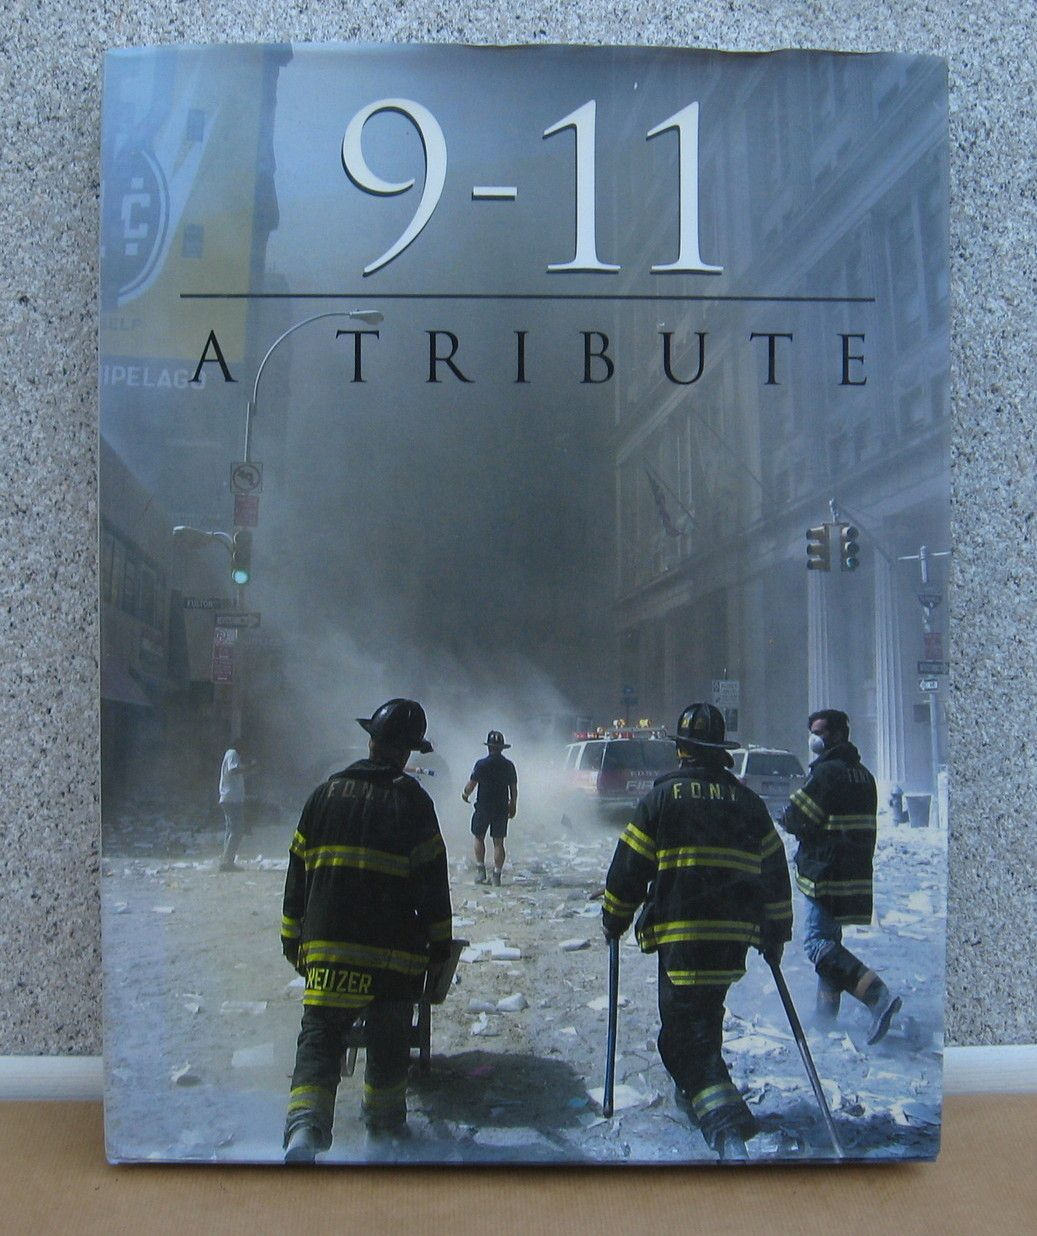 SOLD 911, A Tribute Tribute, Coffee table books, Thing 1